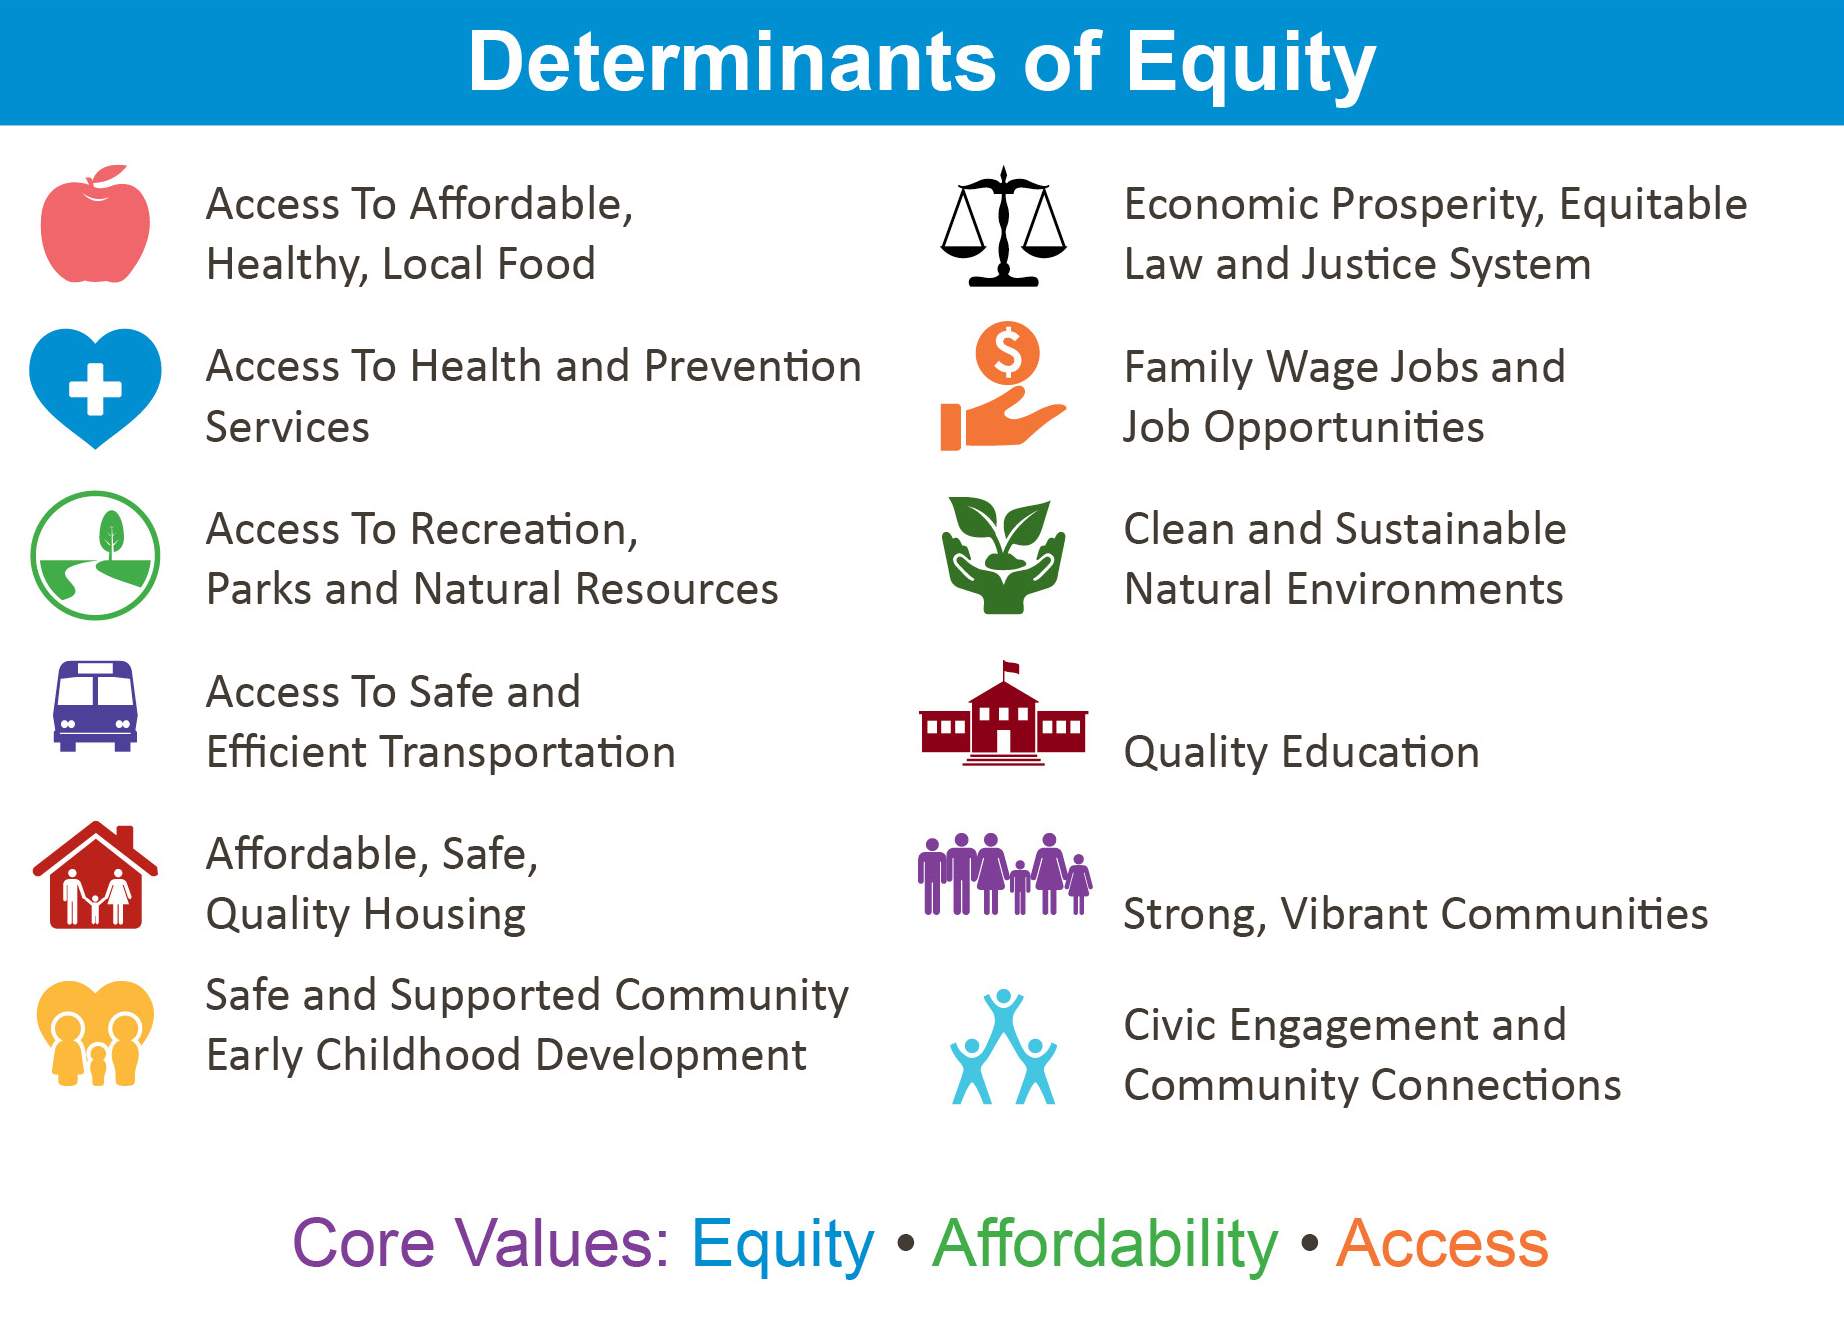 Determinants of Health Equity